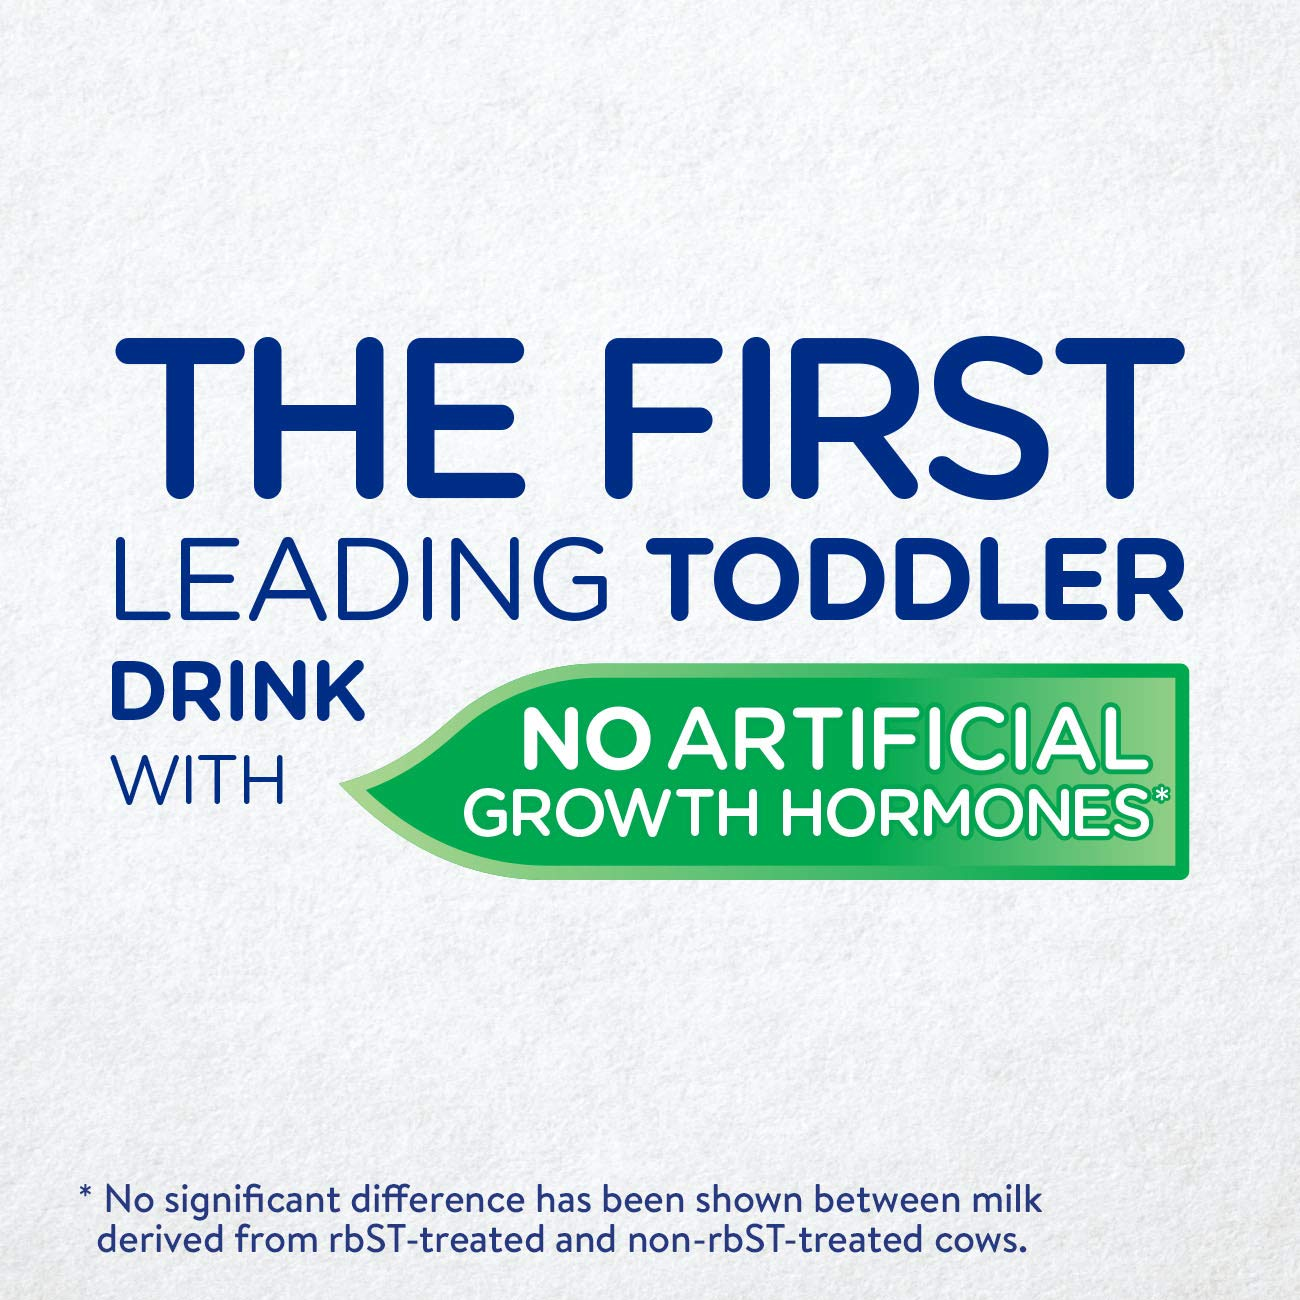 Go & Grow by Similac Non-GMO Toddler Milk-Based Drink with 2'-FL HMO for Immune Support, Powder Stick Packs, 17.4 g, 64 Count by Similac Go & Grow Milk (Image #8)